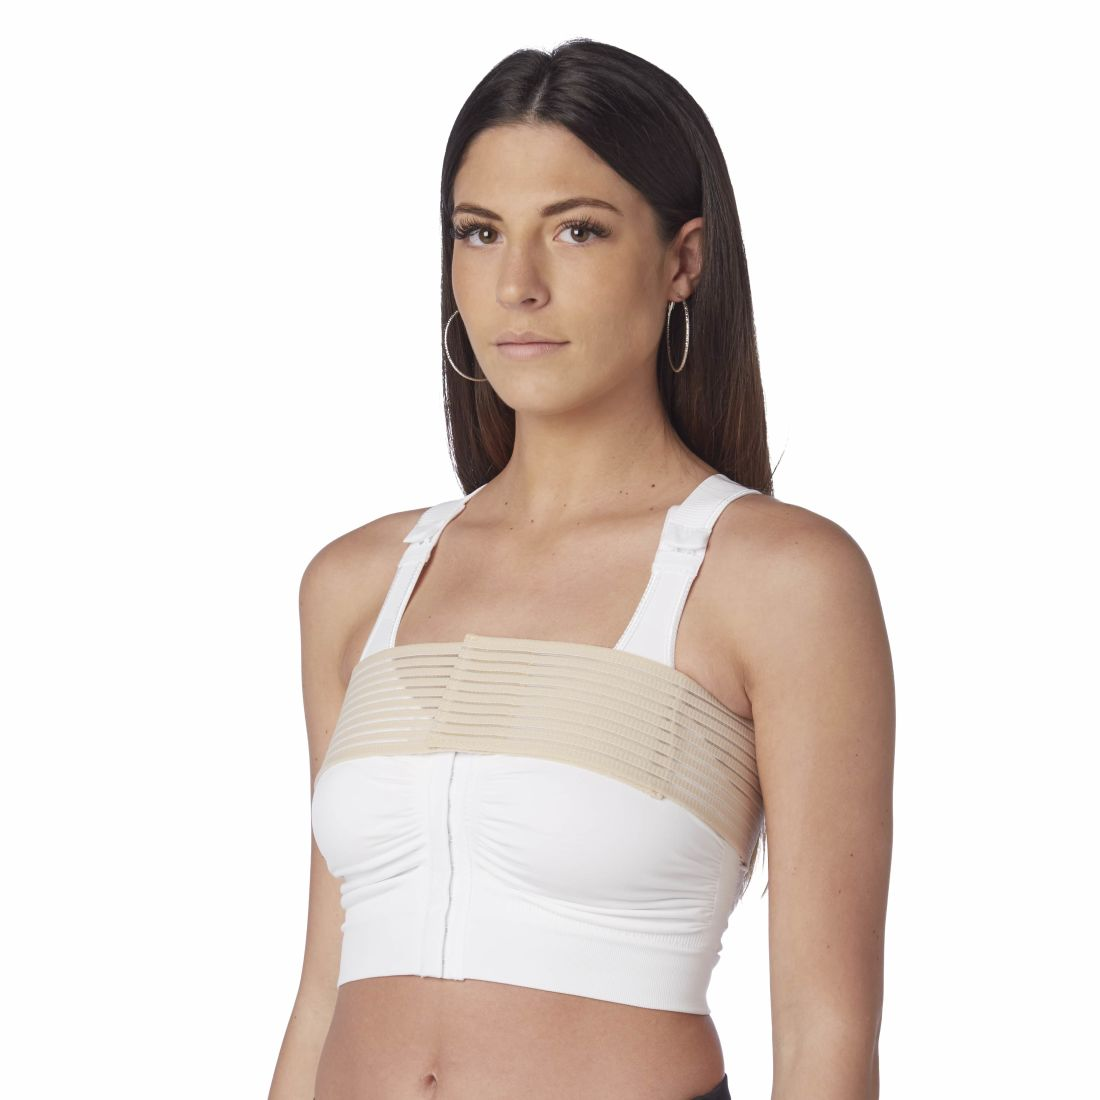 3a2f6f8dcbd Post-op bra after breast enlargement or reduction + Elastic stabilizer band